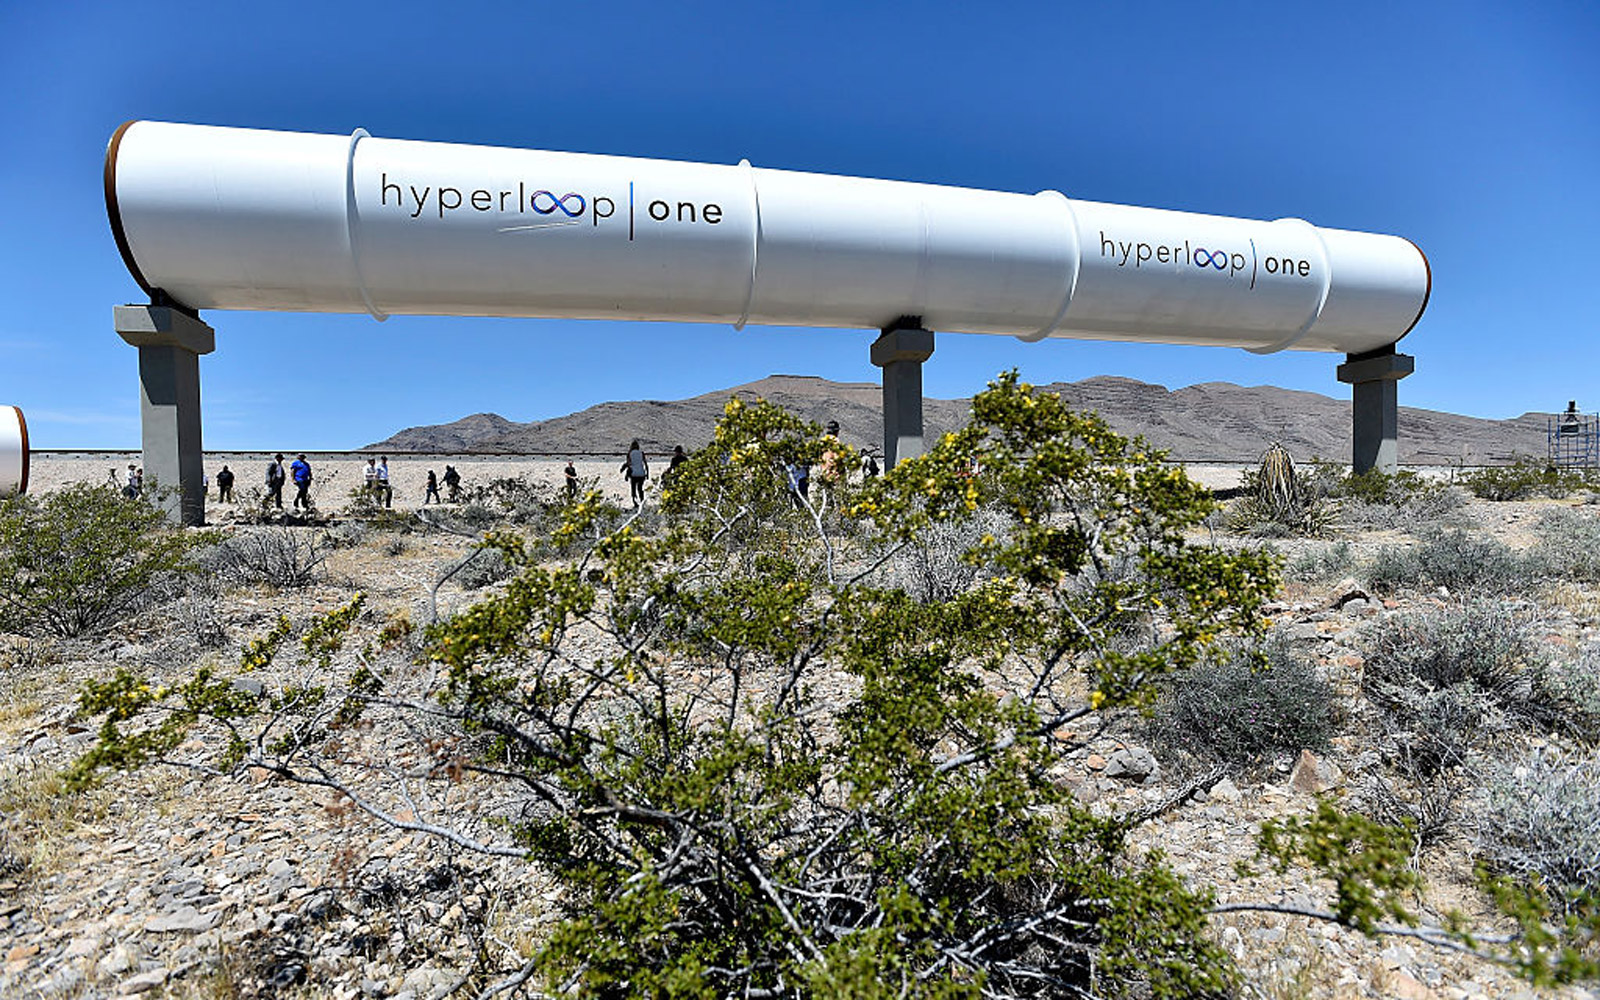 NORTH LAS VEGAS, NV - MAY 11:  Hyperloop tubes are displayed during the first test of the propulsion system at the Hyperloop One Test and Safety site on May 11, 2016 in North Las Vegas, Nevada. The company plans to create a fully operational hyperloop sys